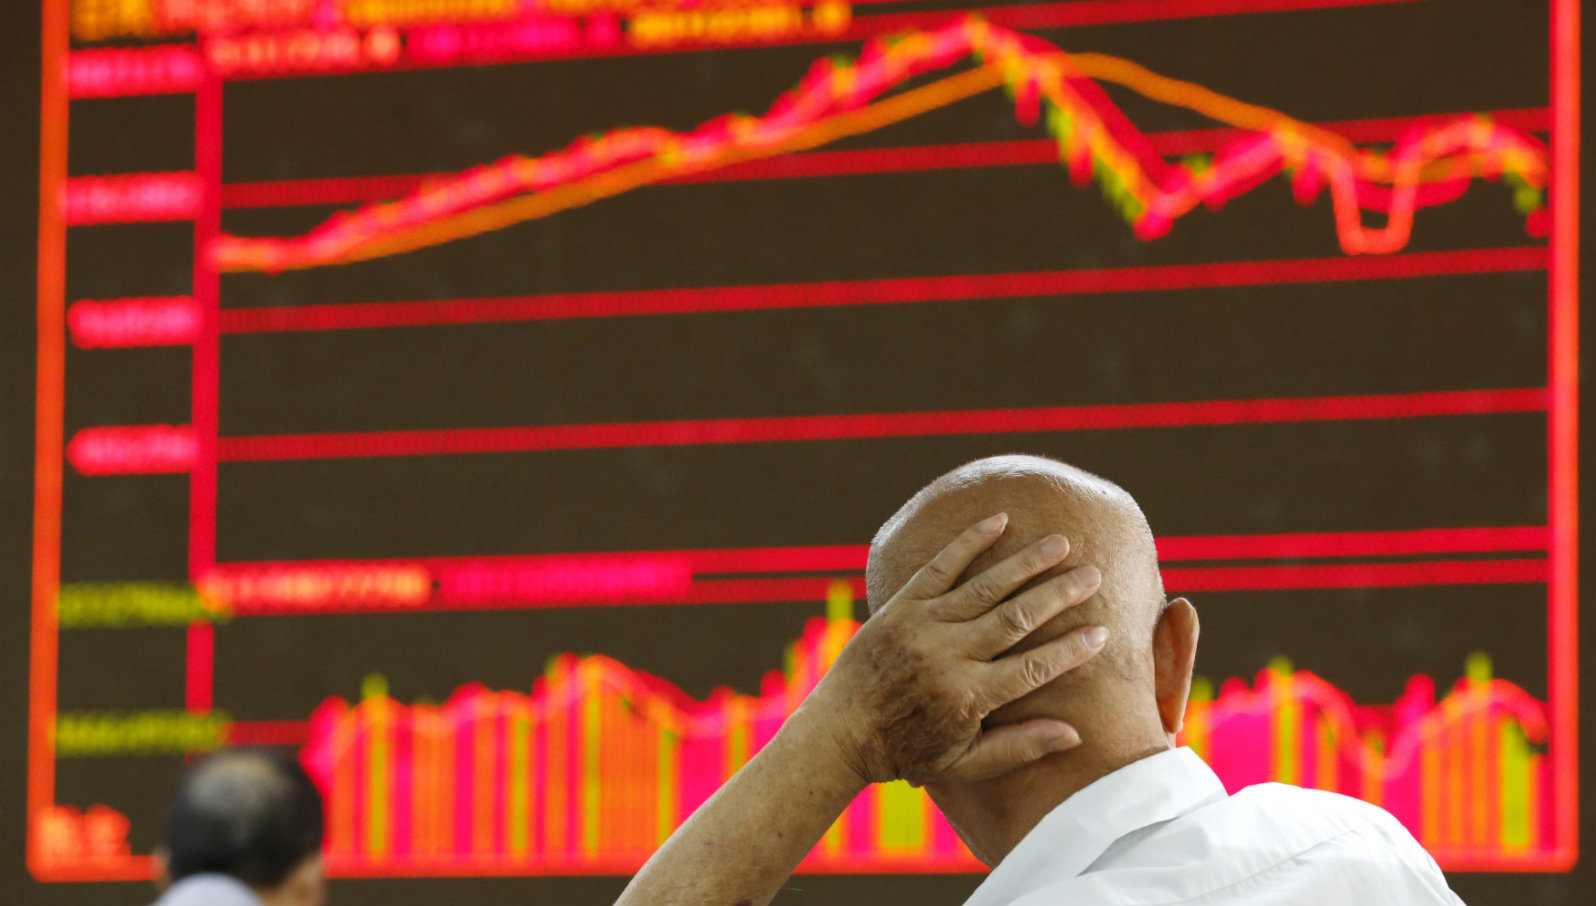 An investor looks at an electronic board showing stock information at a brokerage house in Beijing, China, August 25, 2015. China's major stock indexes sank more than 6 percent in early trade on Tuesday, after a catastrophic Monday that saw Chinese exchanges suffer their biggest losses since the global financial crisis, destabilising financial markets around the world.